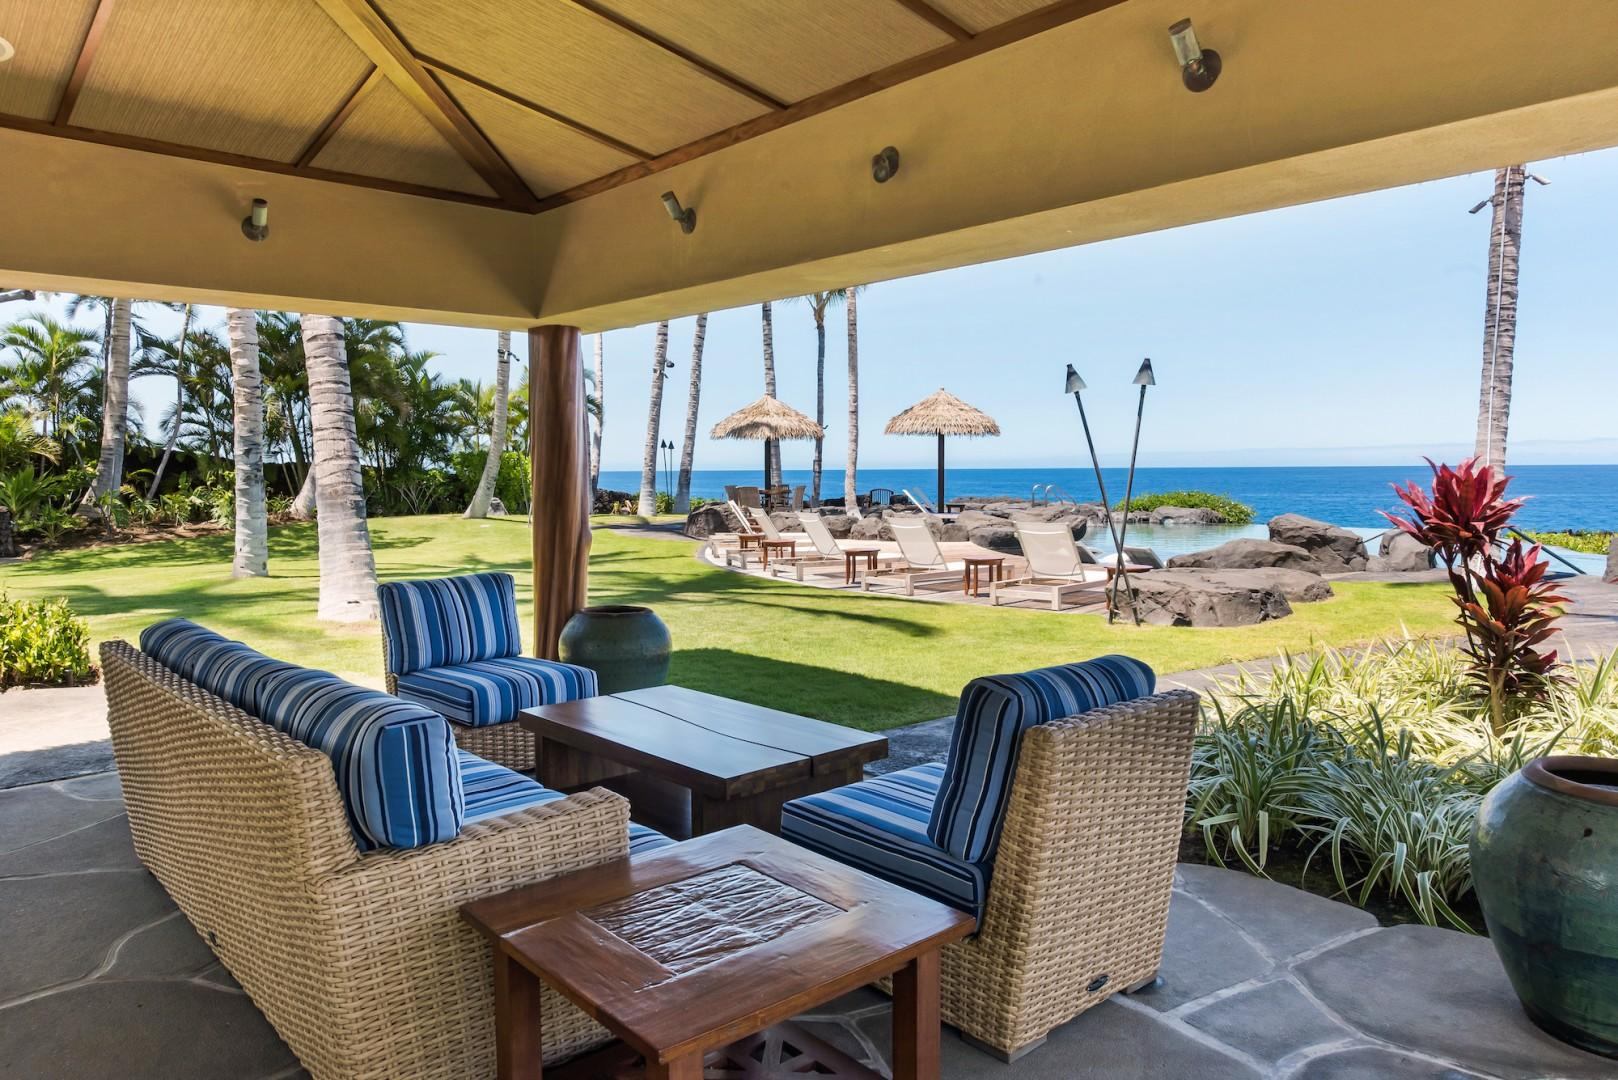 The Grotto Amenity Center w/ Plenty of Shady Places to Lounge and Soak Up the Stunning Ocean Views